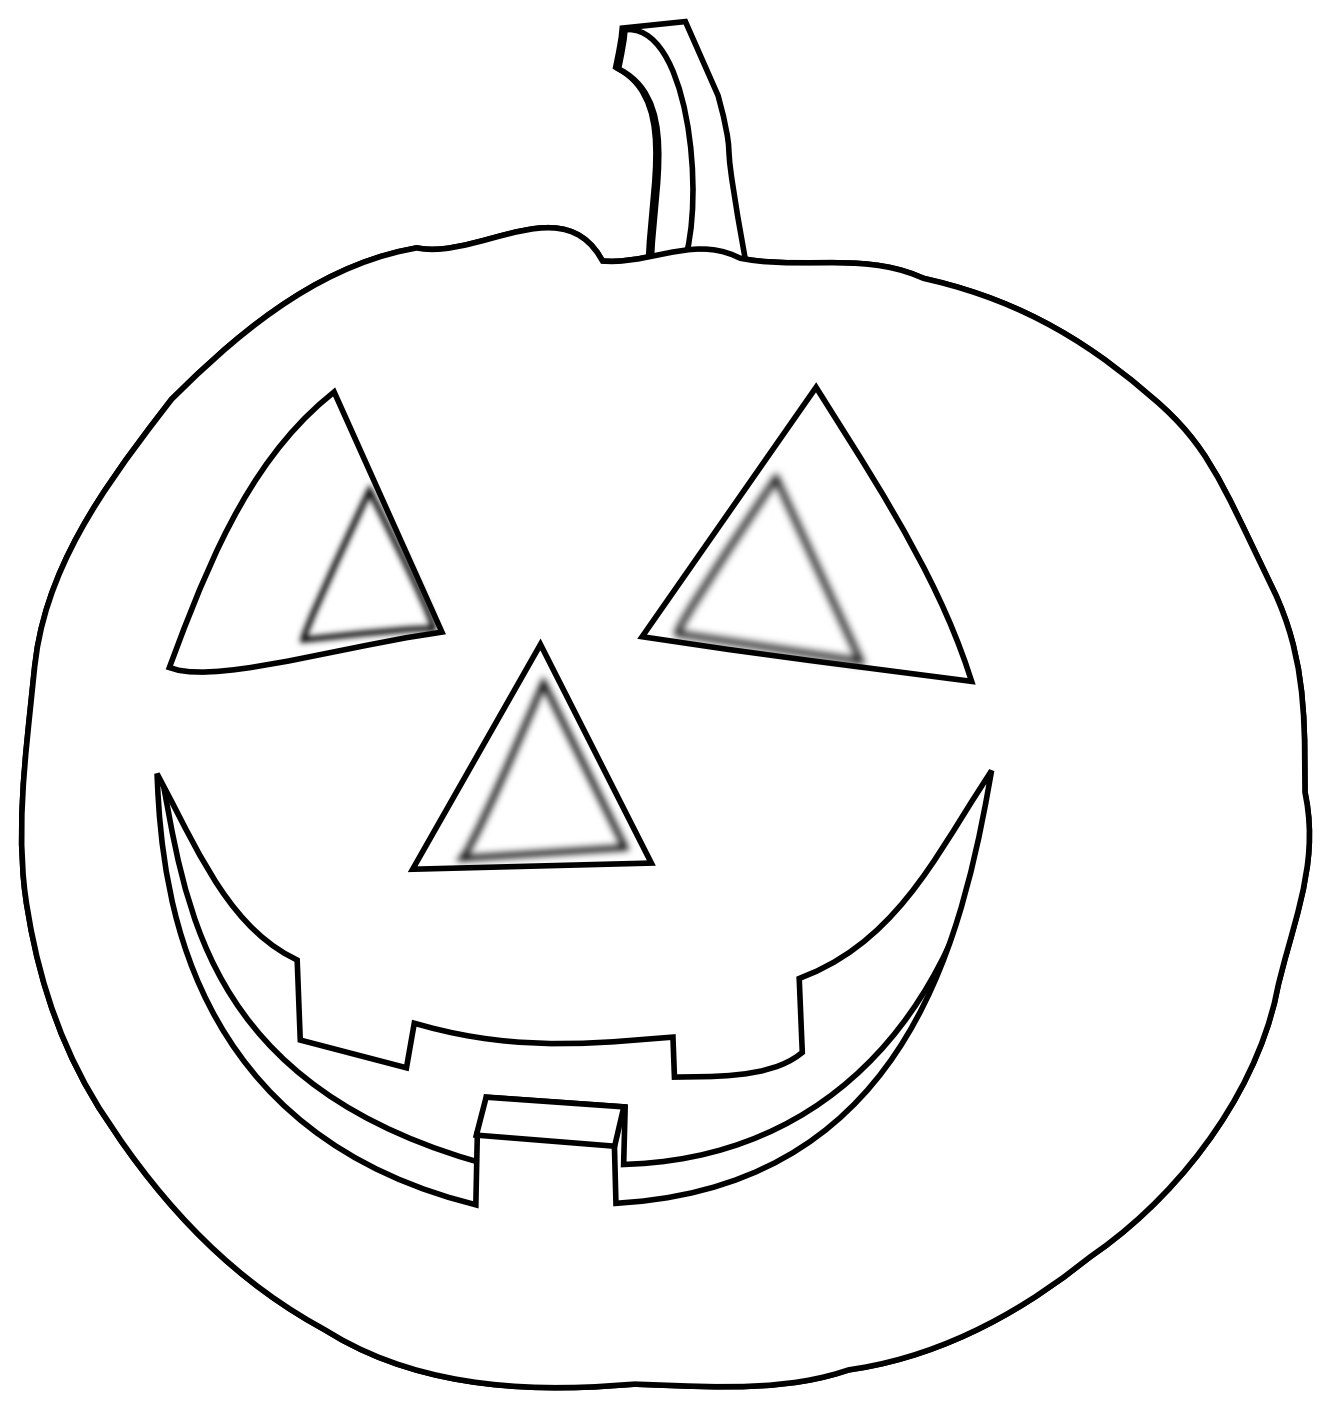 Halloween Black and White Color Painting